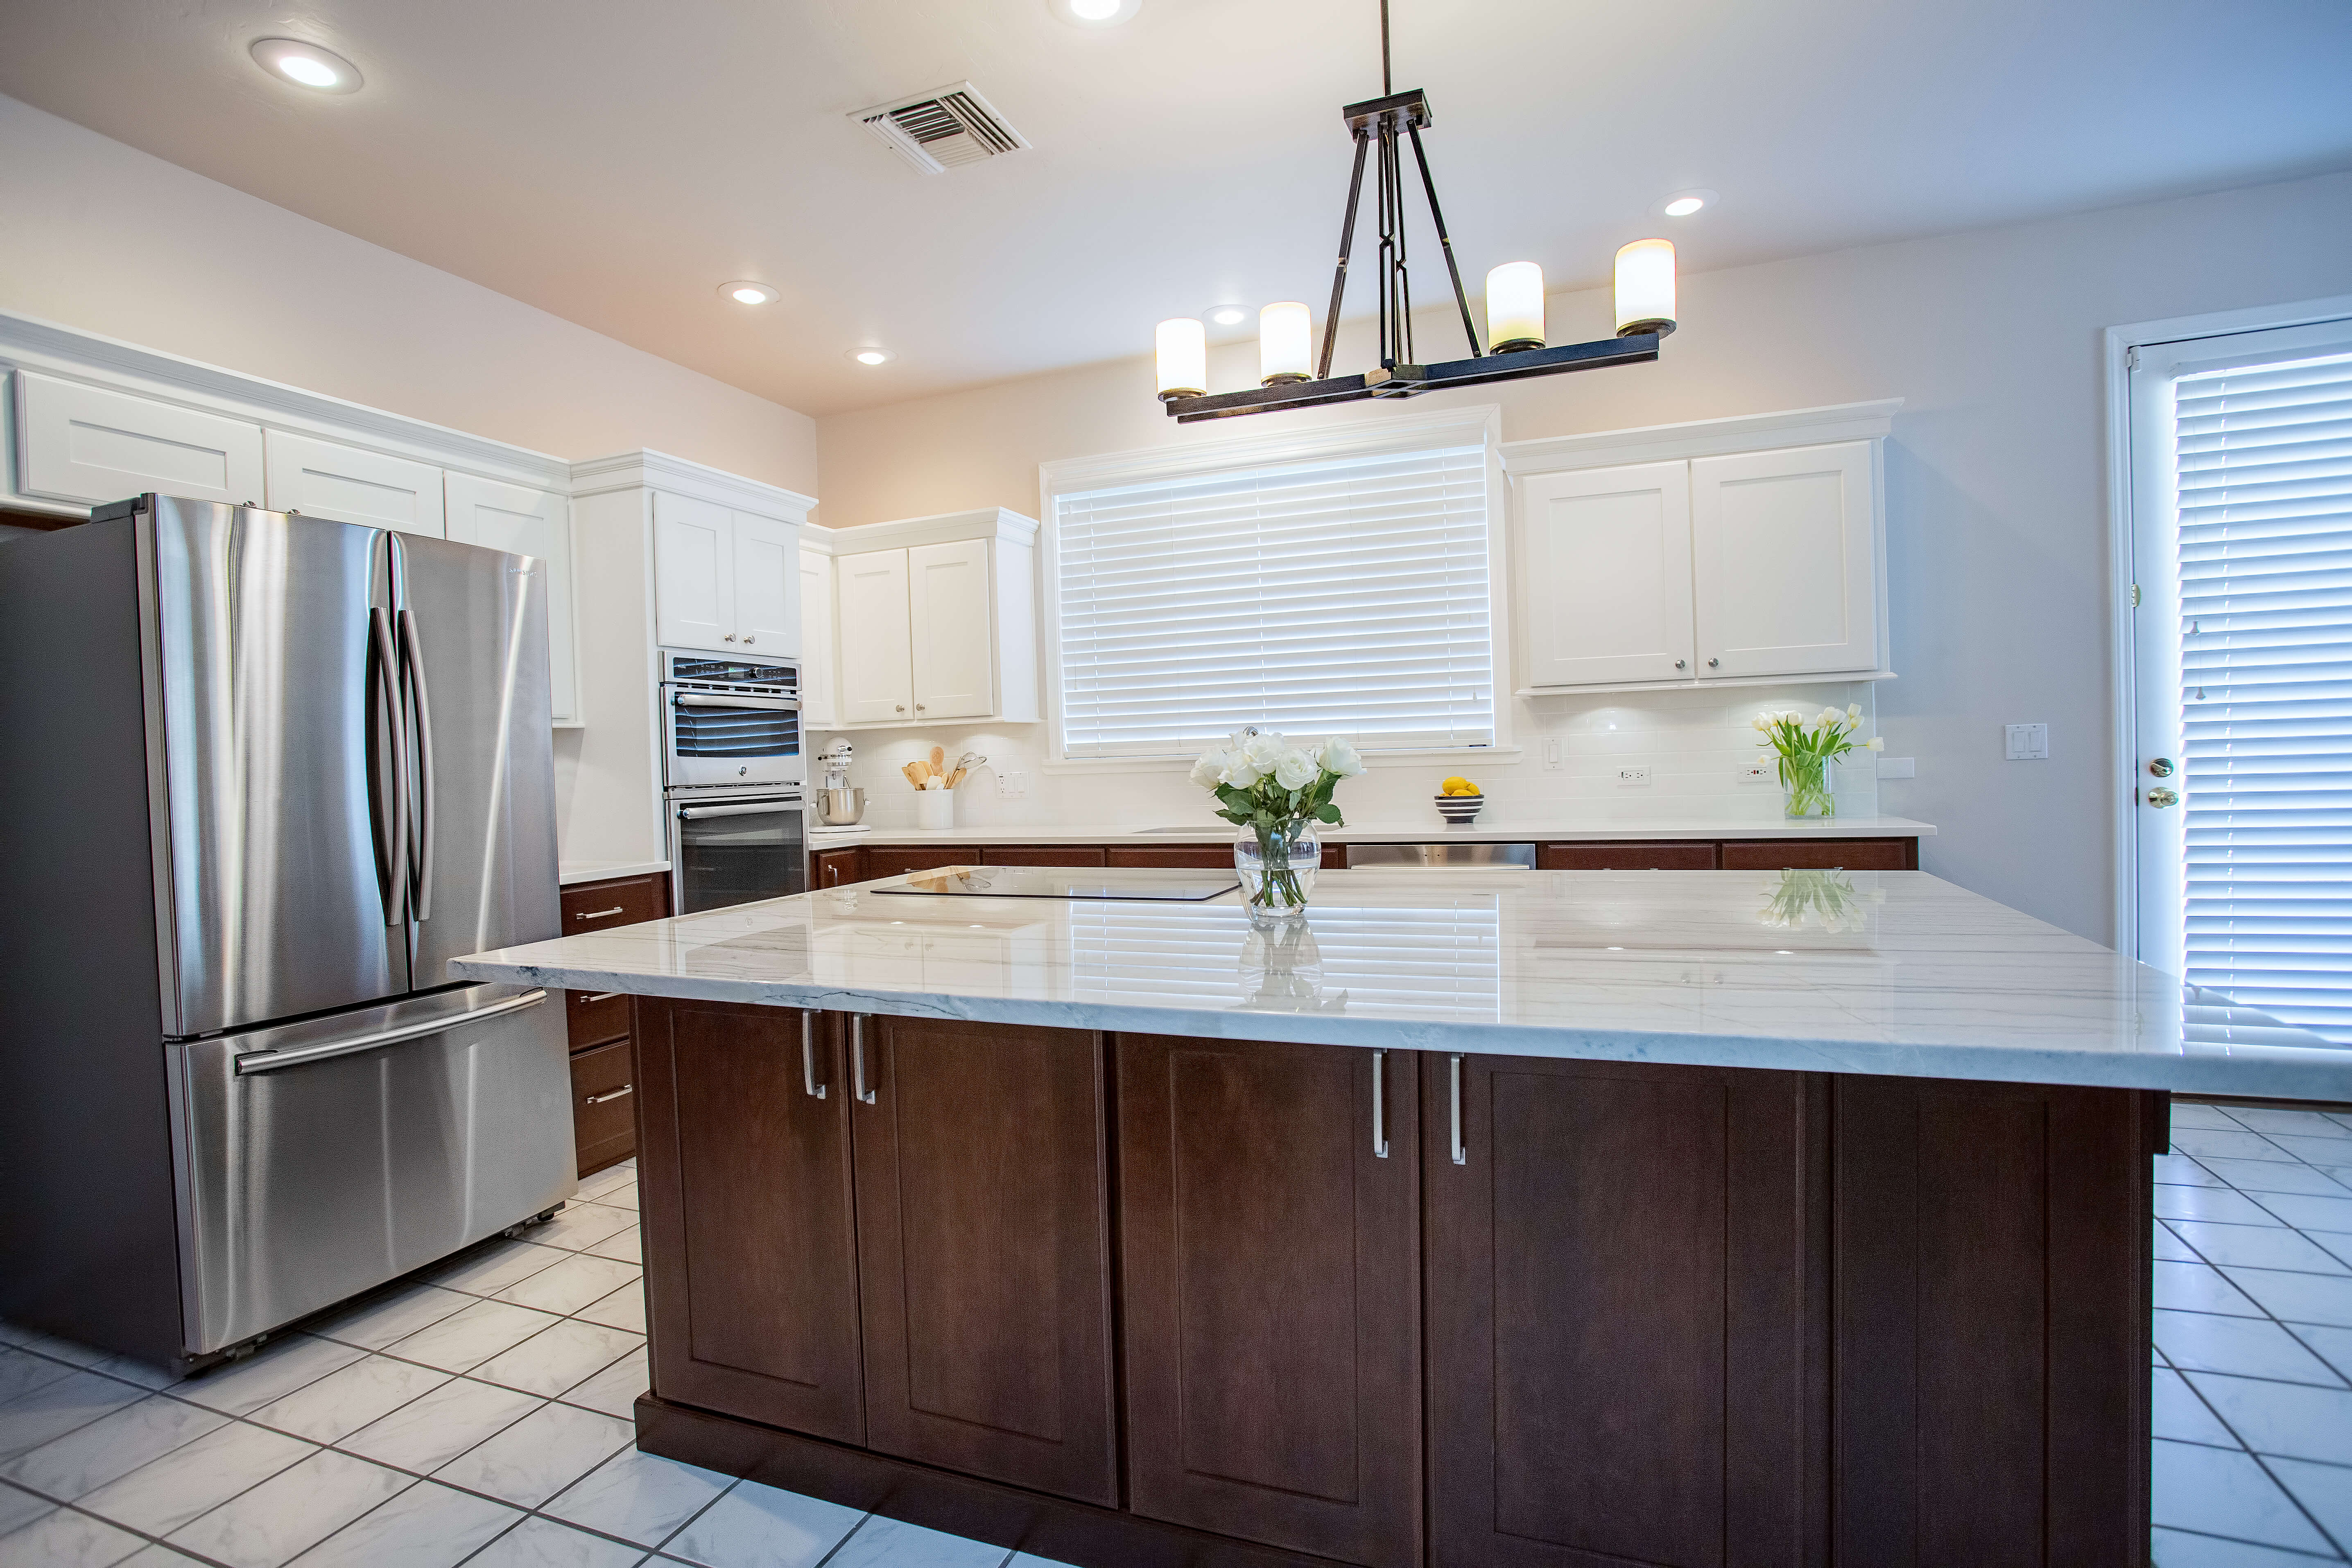 kitchen reface aid toaster oven fay after 2 photography by kc creative design before and